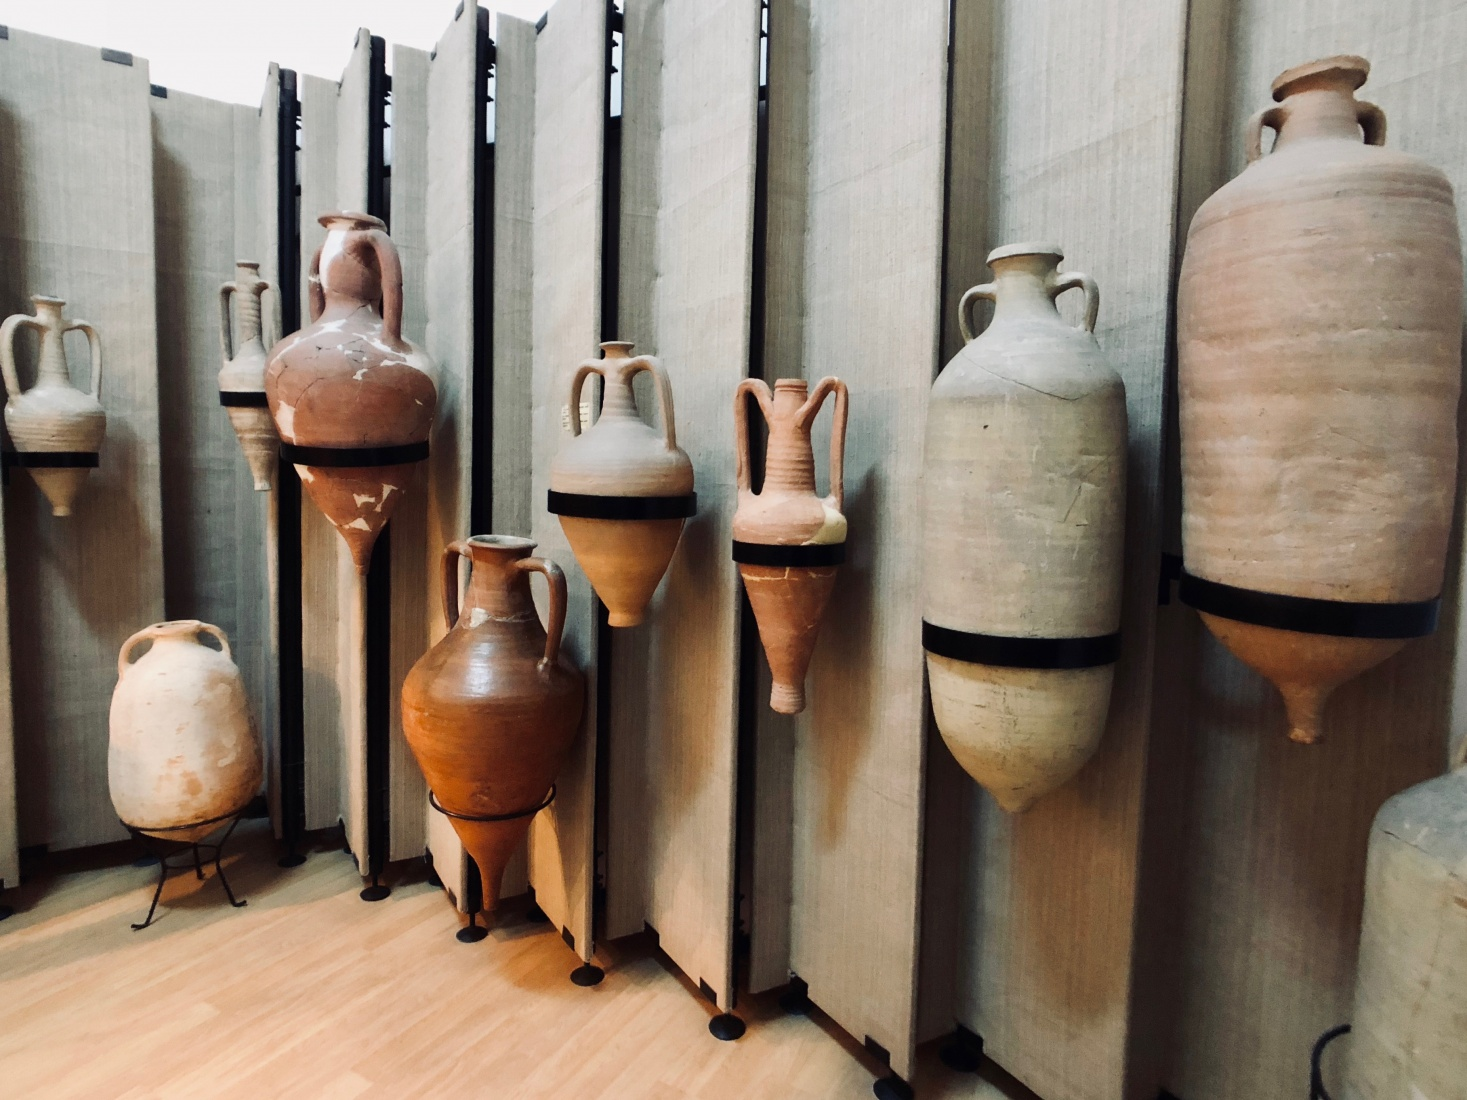 Roman amphorae in the National History and Archaeological Museum in Constanța, Romania.